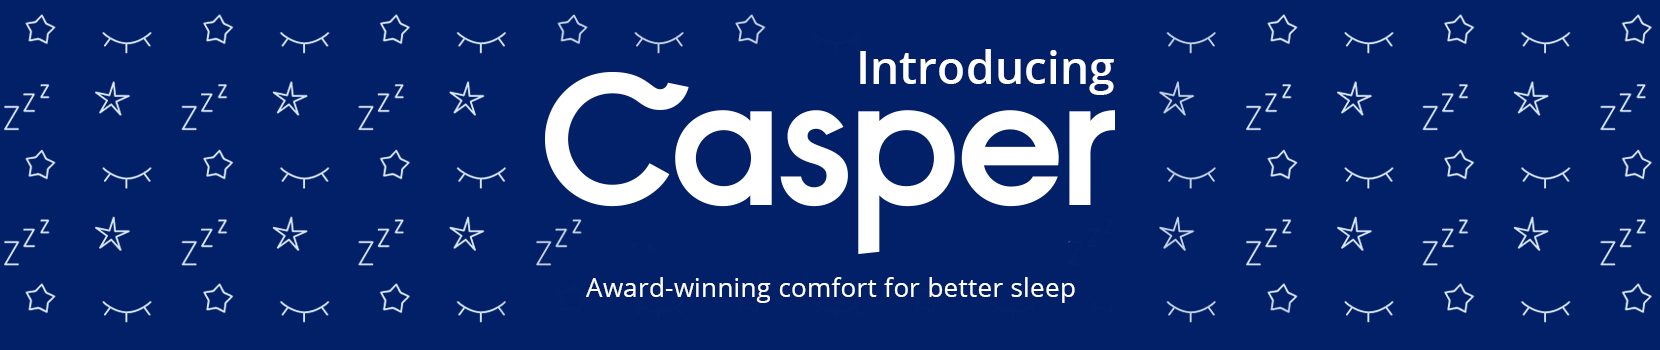 introducing casper. award winning comfort for better sleep